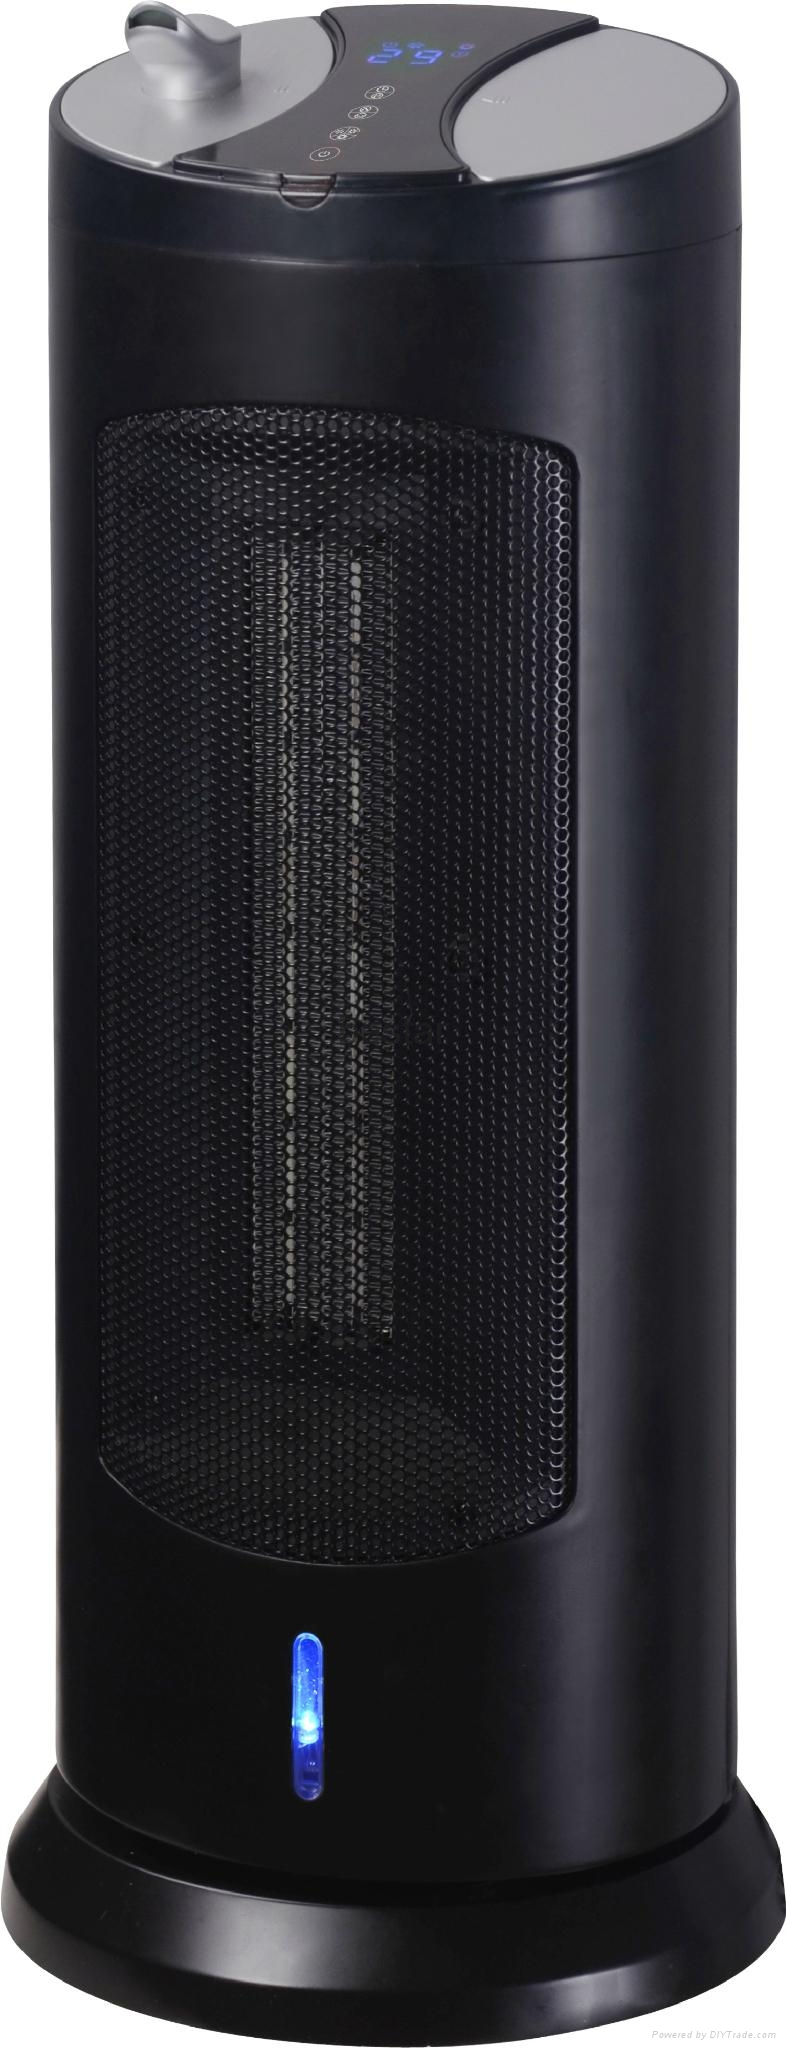 Ceramic Tower Heater with Digital Display and Remote Control 1